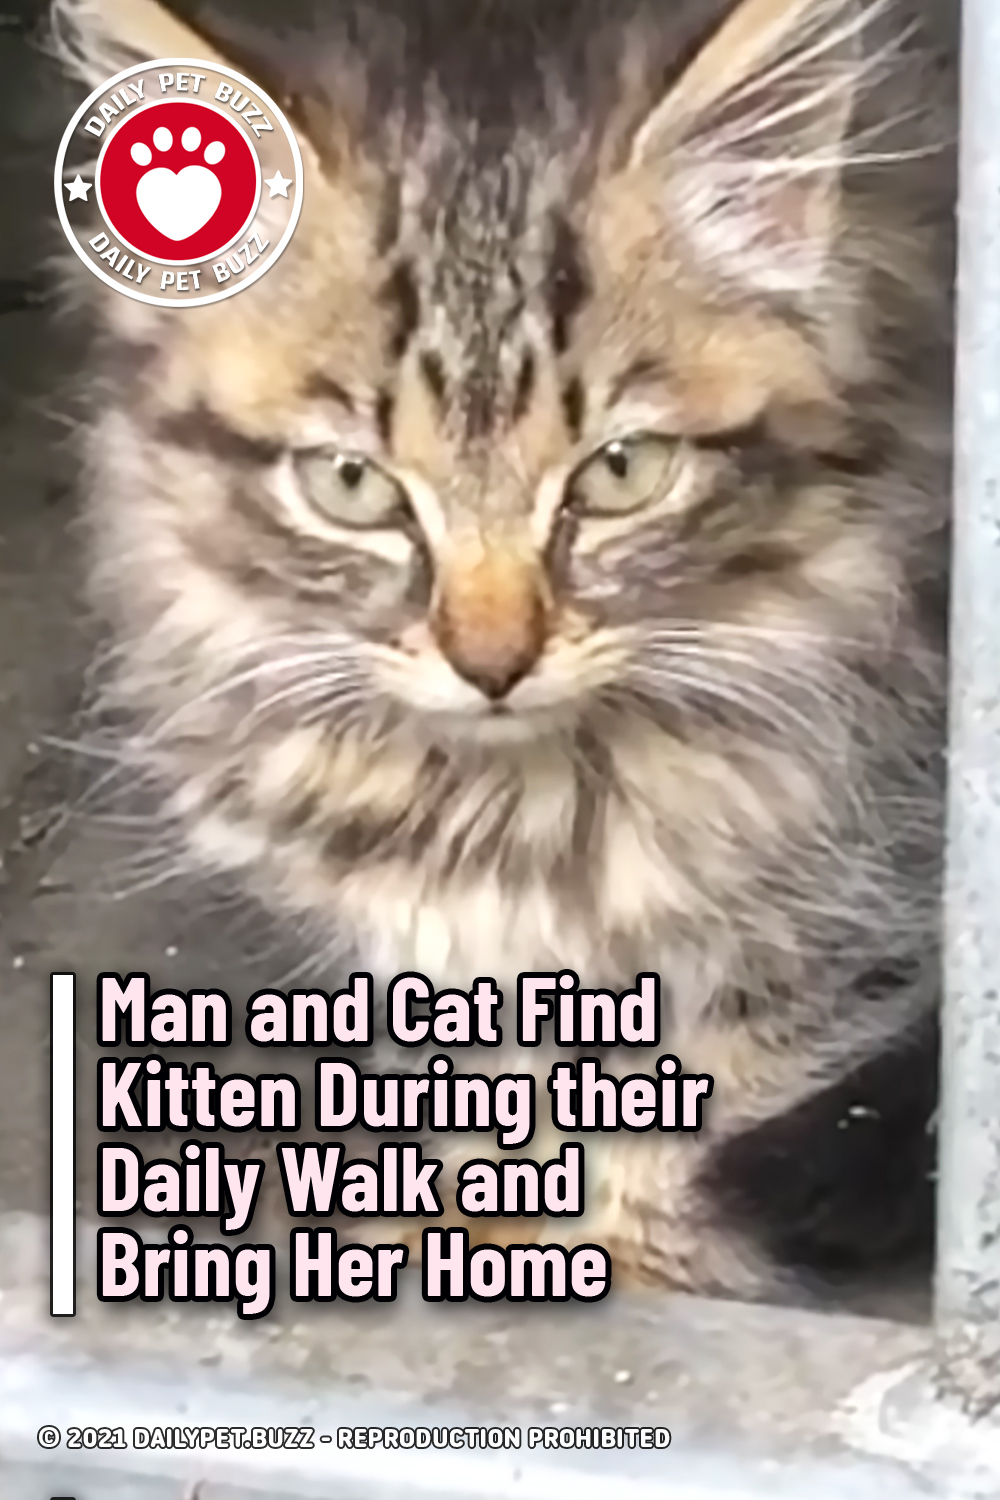 Man and Cat Find Kitten During their Daily Walk and Bring Her Home